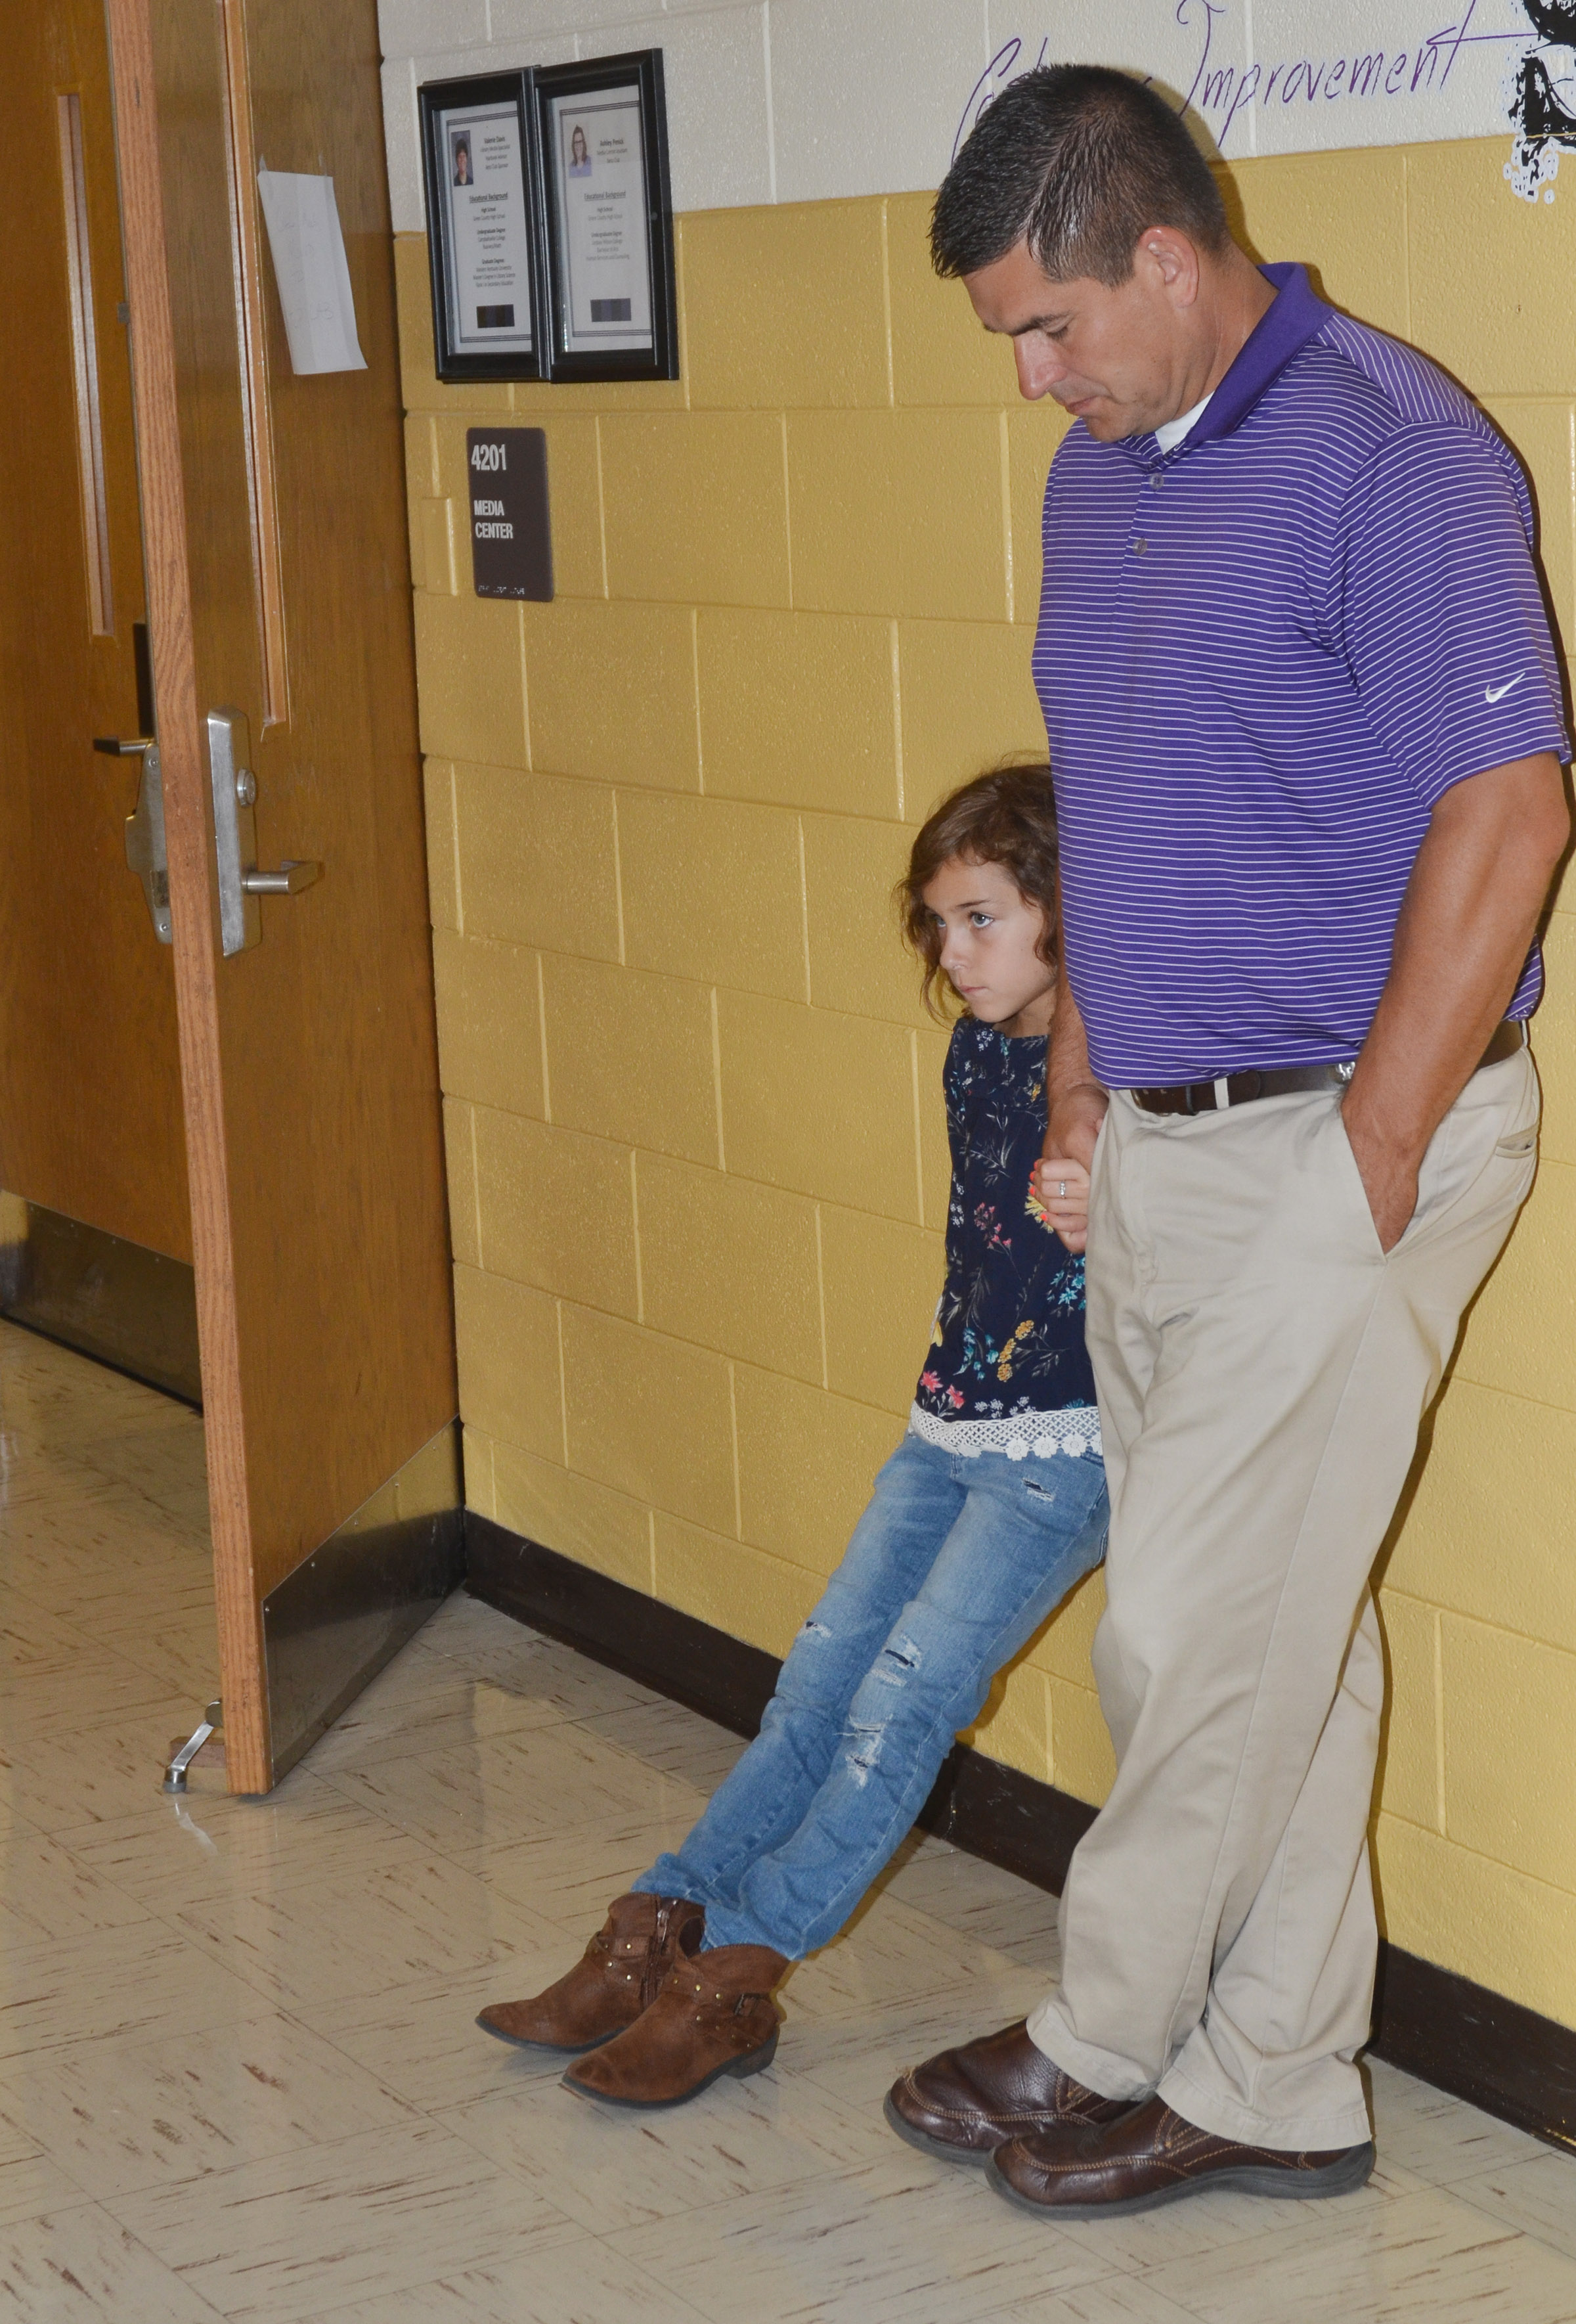 CIS Superintendent Kirby Smith and his daughter Karsyn pray in the CHS hallway.